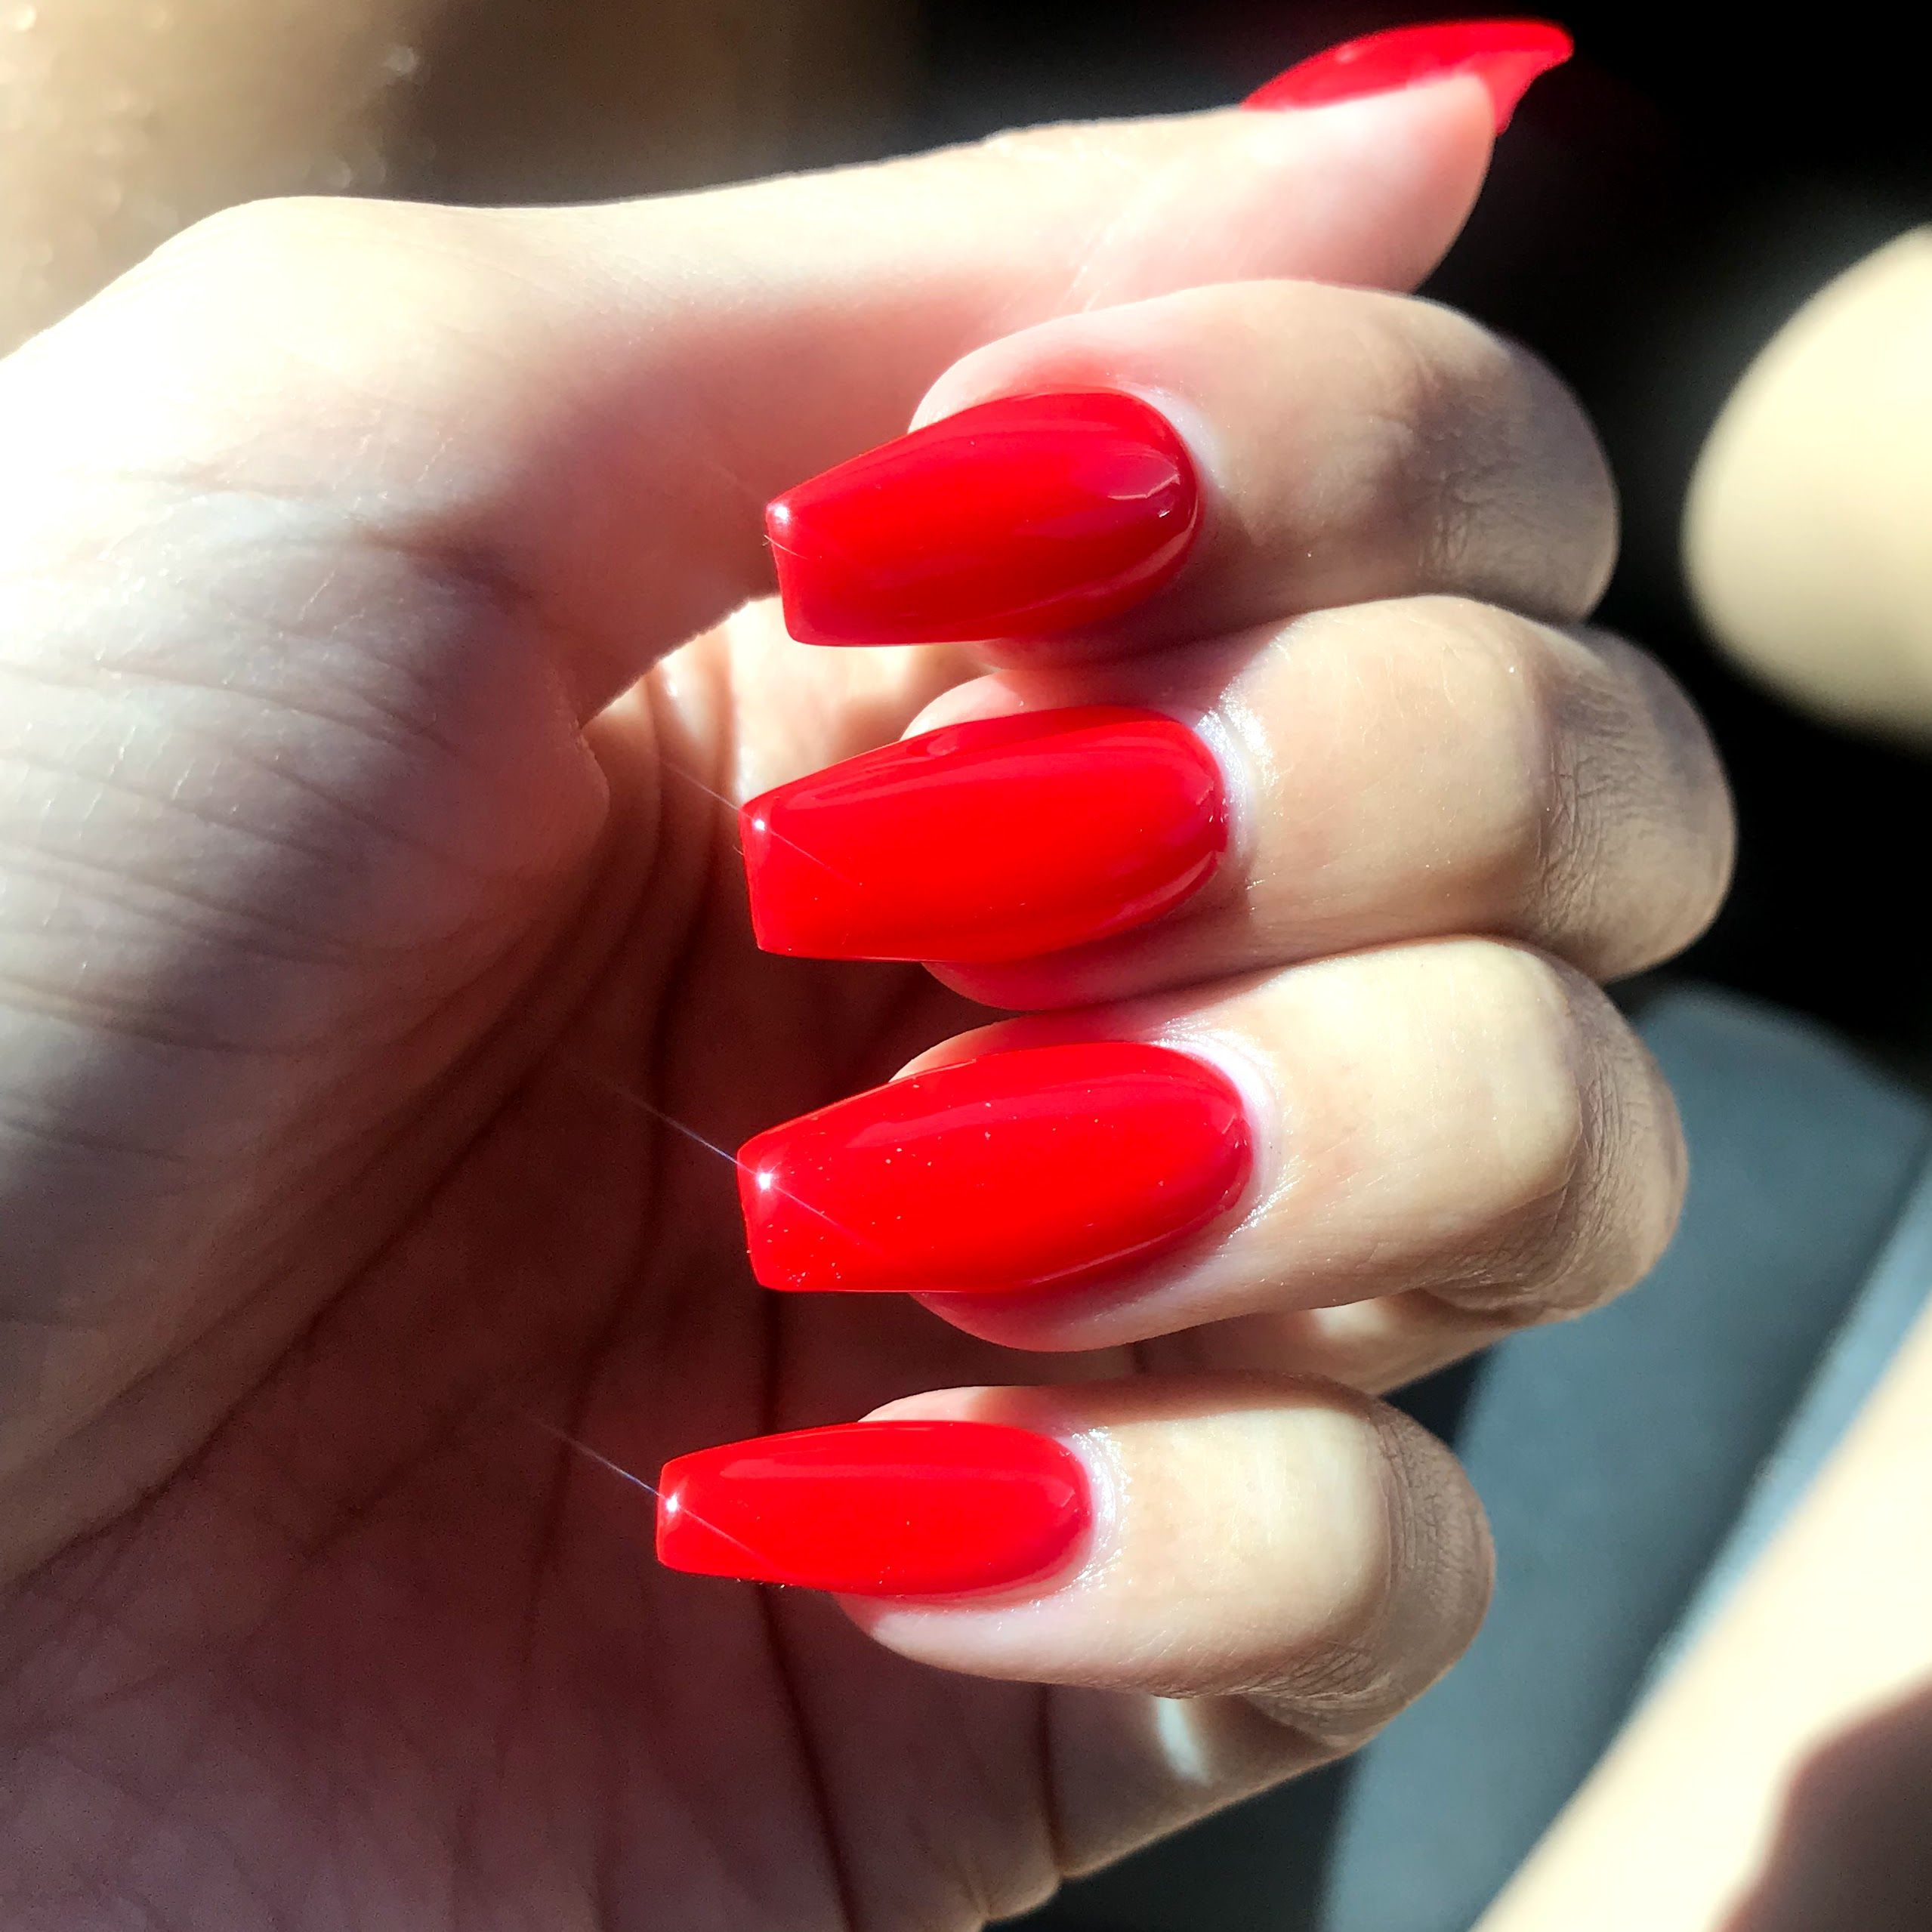 Ferrari Red coffin nails ❤️❤️